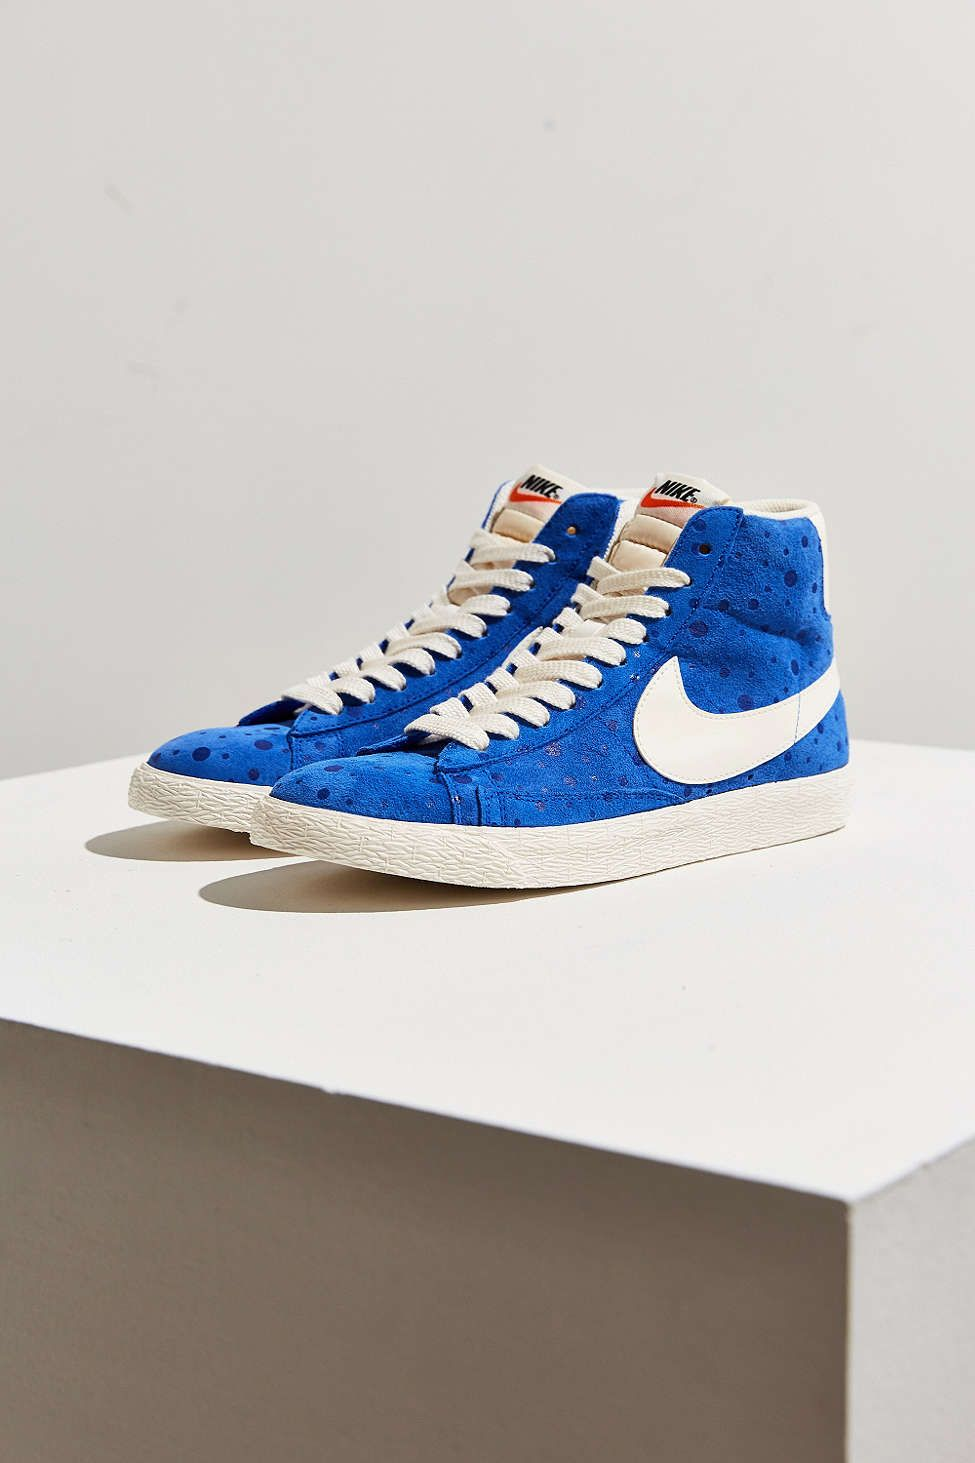 finest selection 141ea bdc5c Nike Womens Blazer Mid Suede Vintage Sneaker - Urban Outfitters  dotshopsave